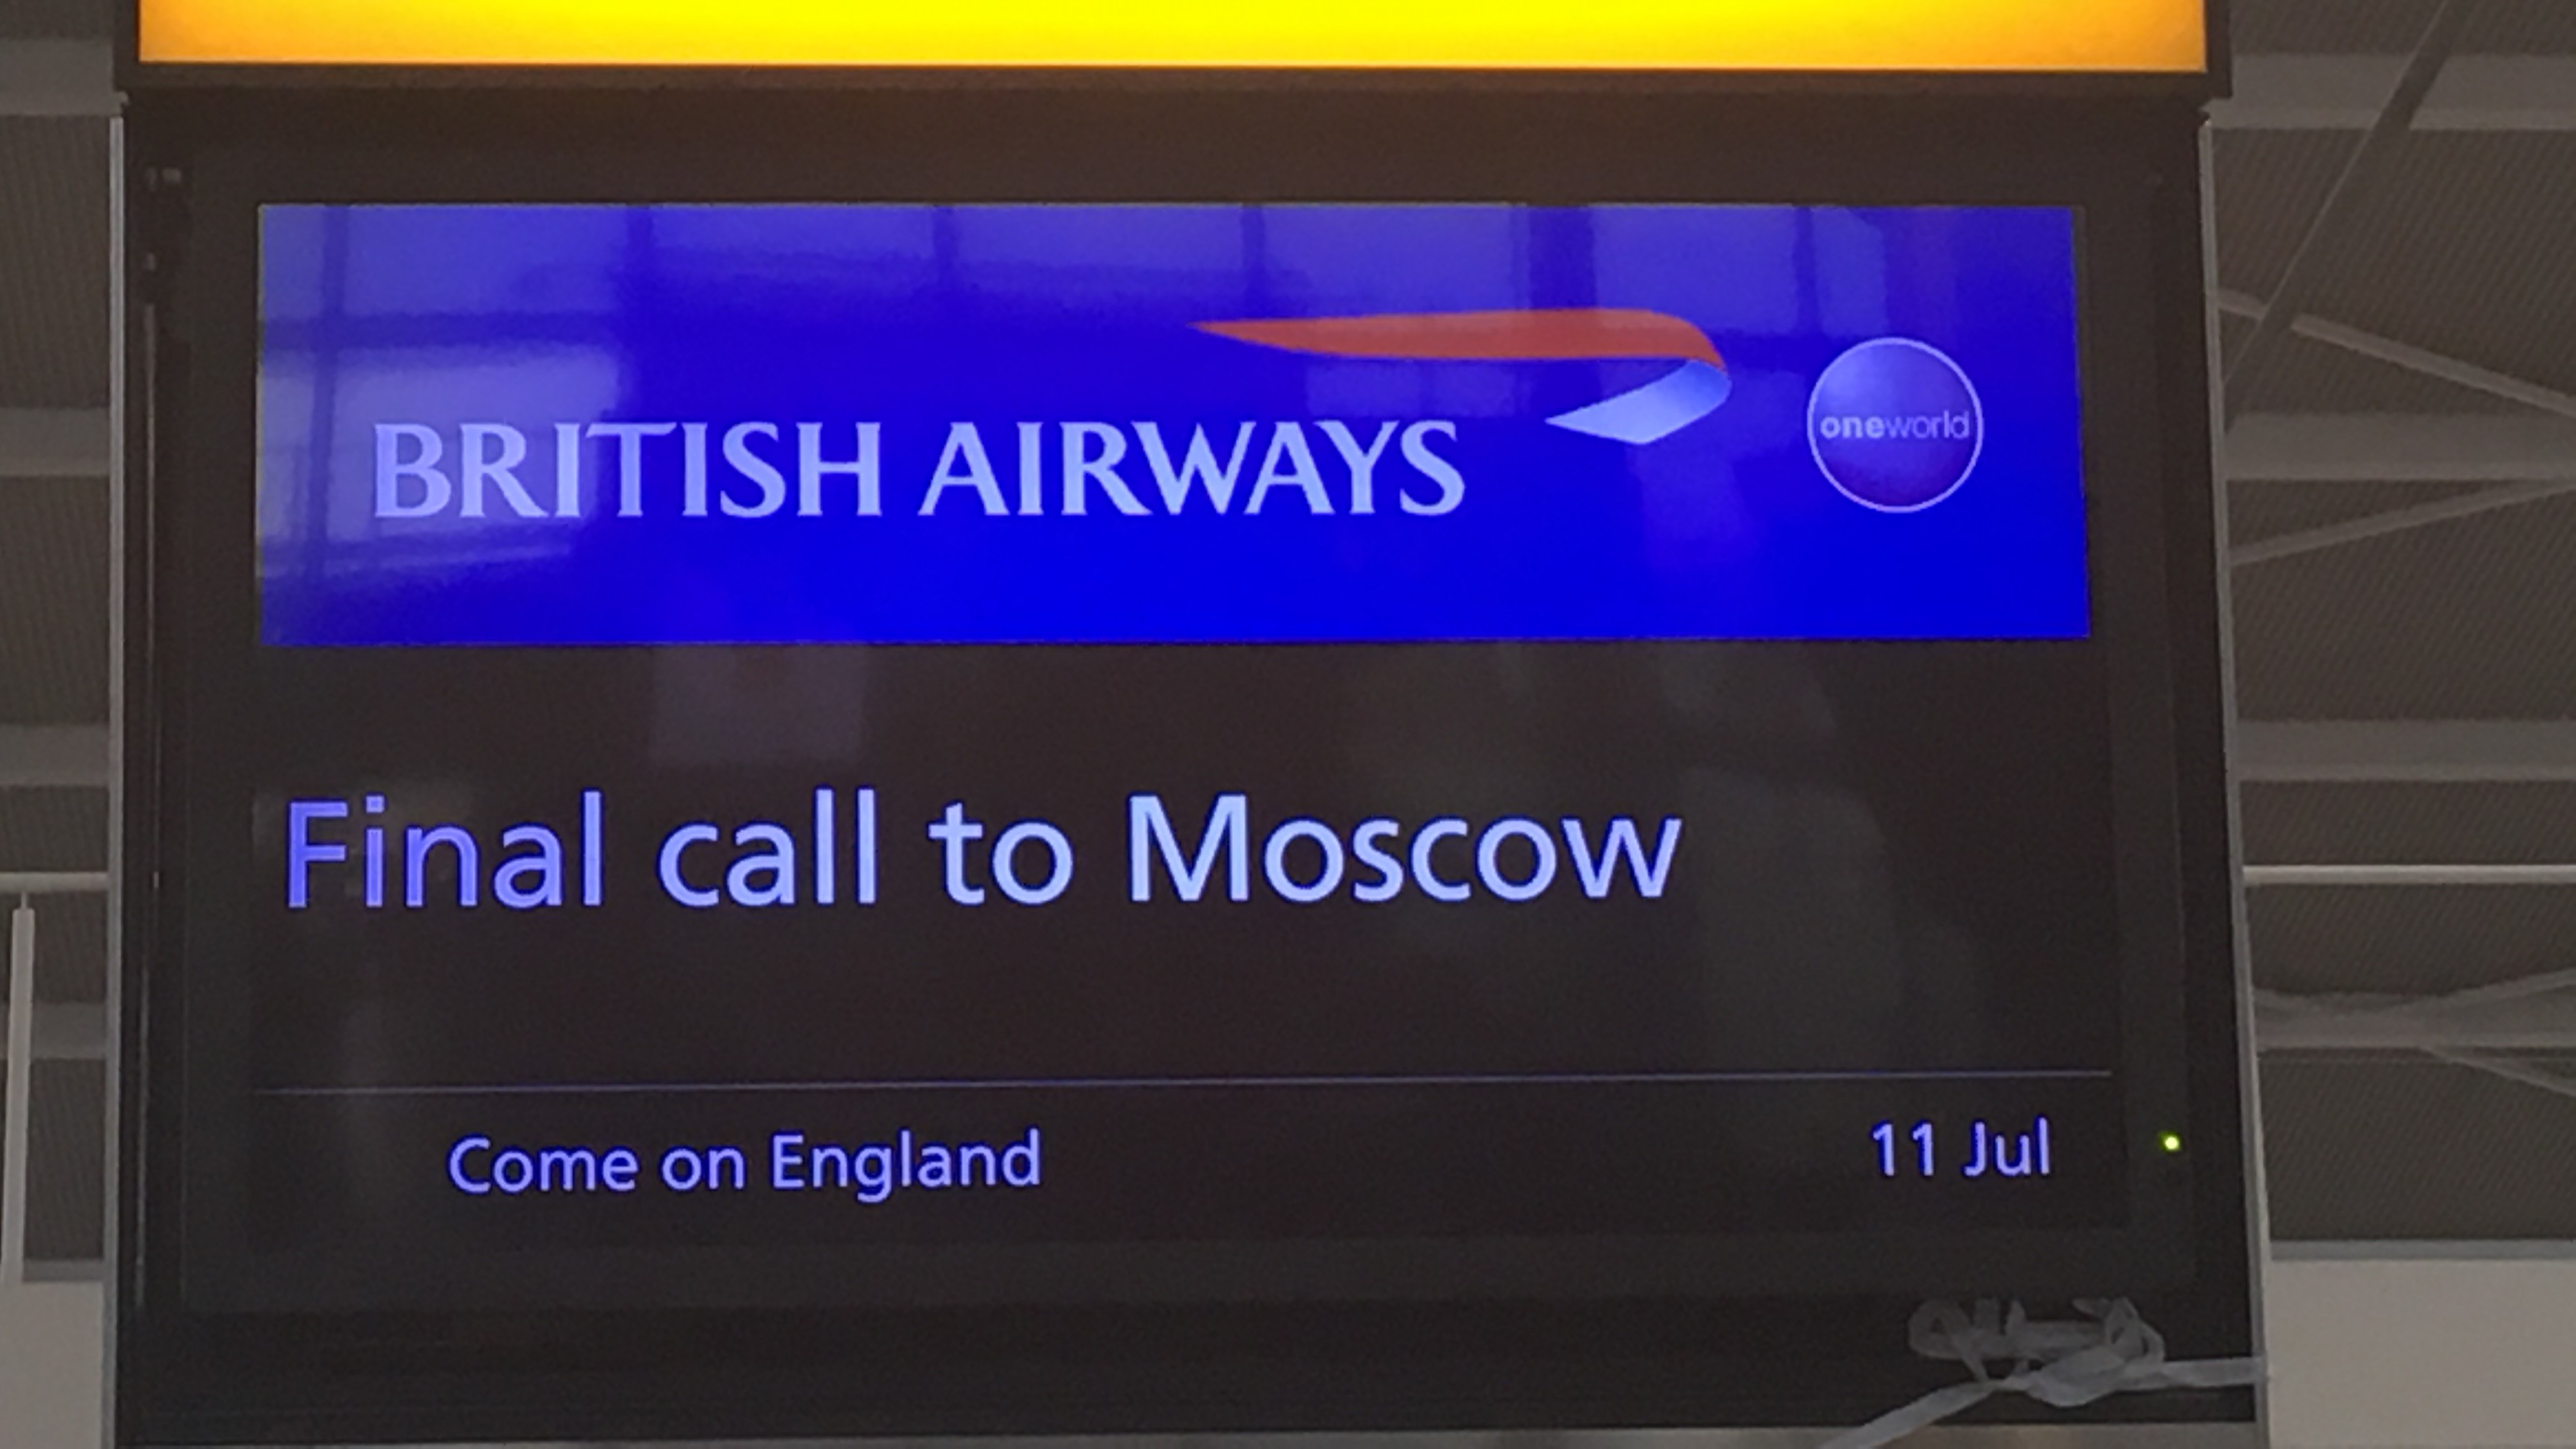 ​British Airways Dishes Out Free Southgate Waistcoats For Customers Flying To Moscow